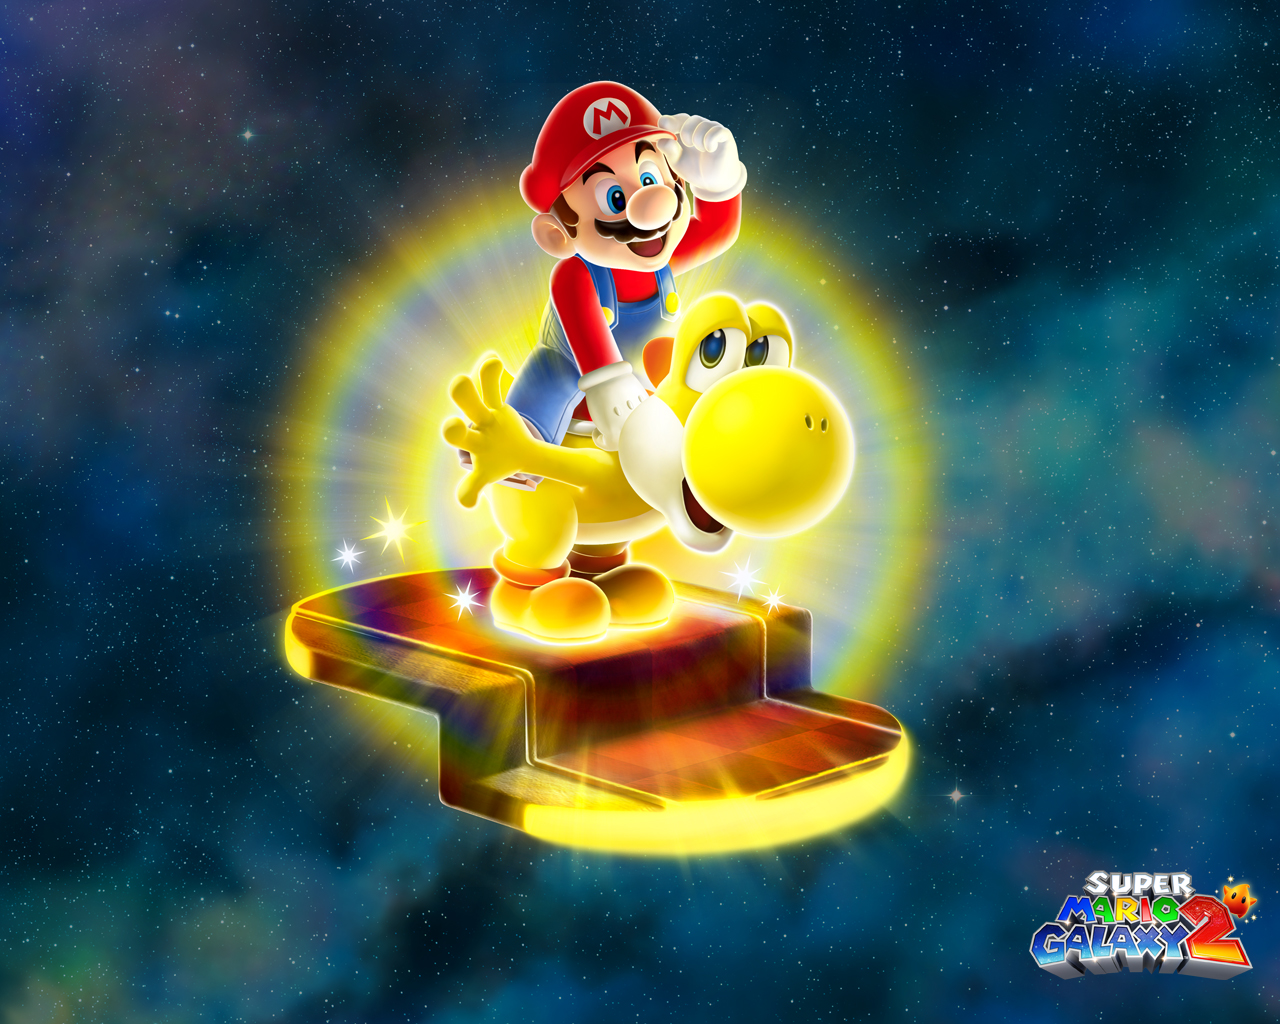 Free Nintendo Games Wallpapers and Images